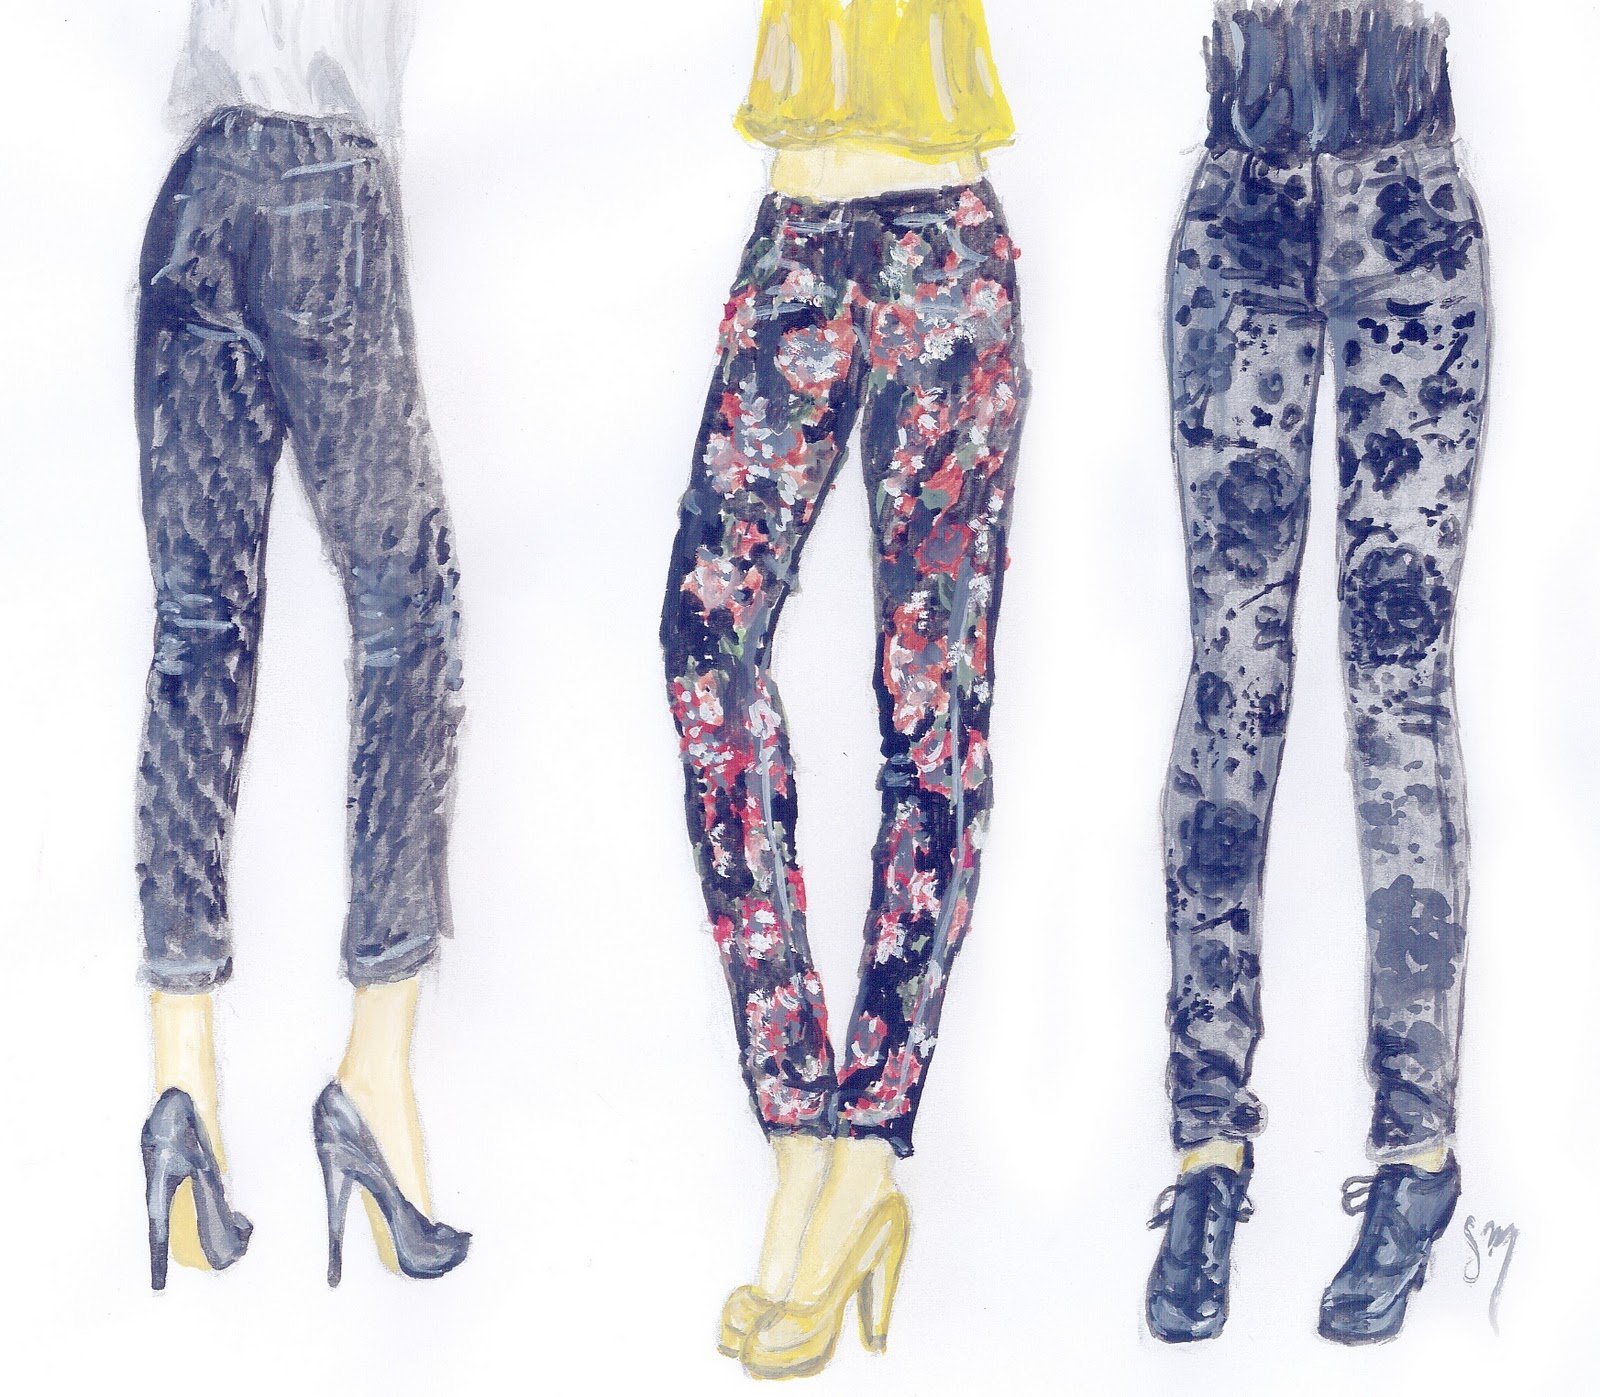 I Dream of Jeans… in Dark Patterns